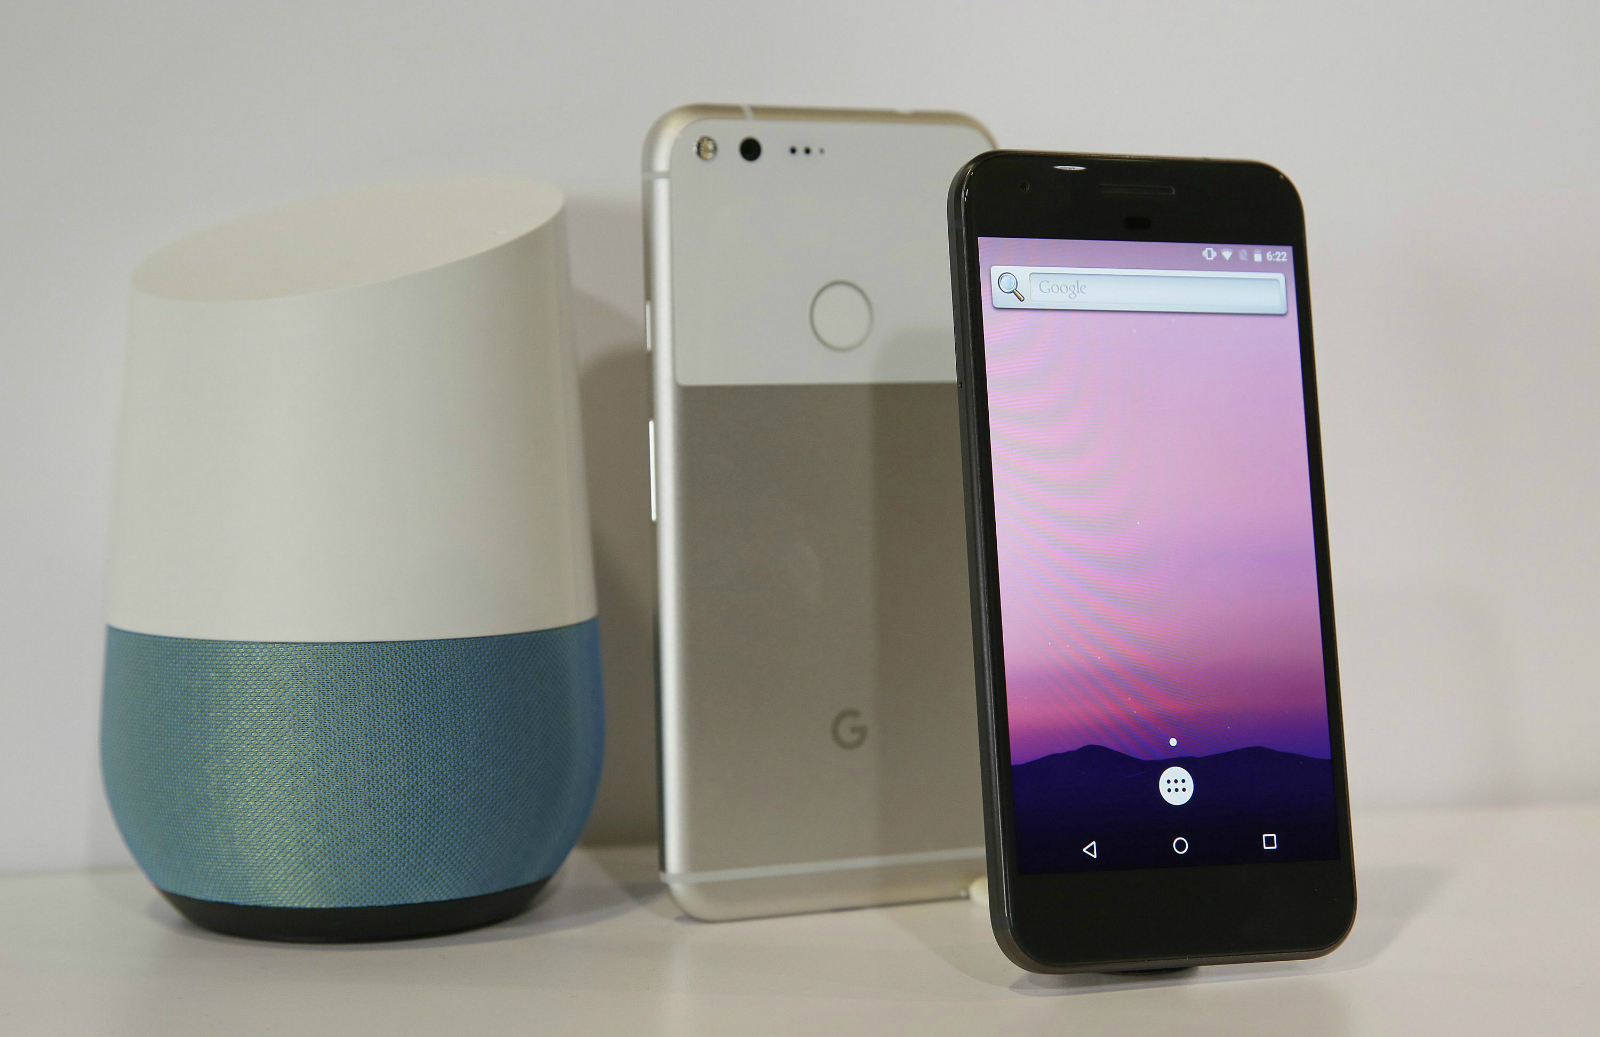 Google Pixel Phones: Close to Becoming Perfect with Google's Next Android Version